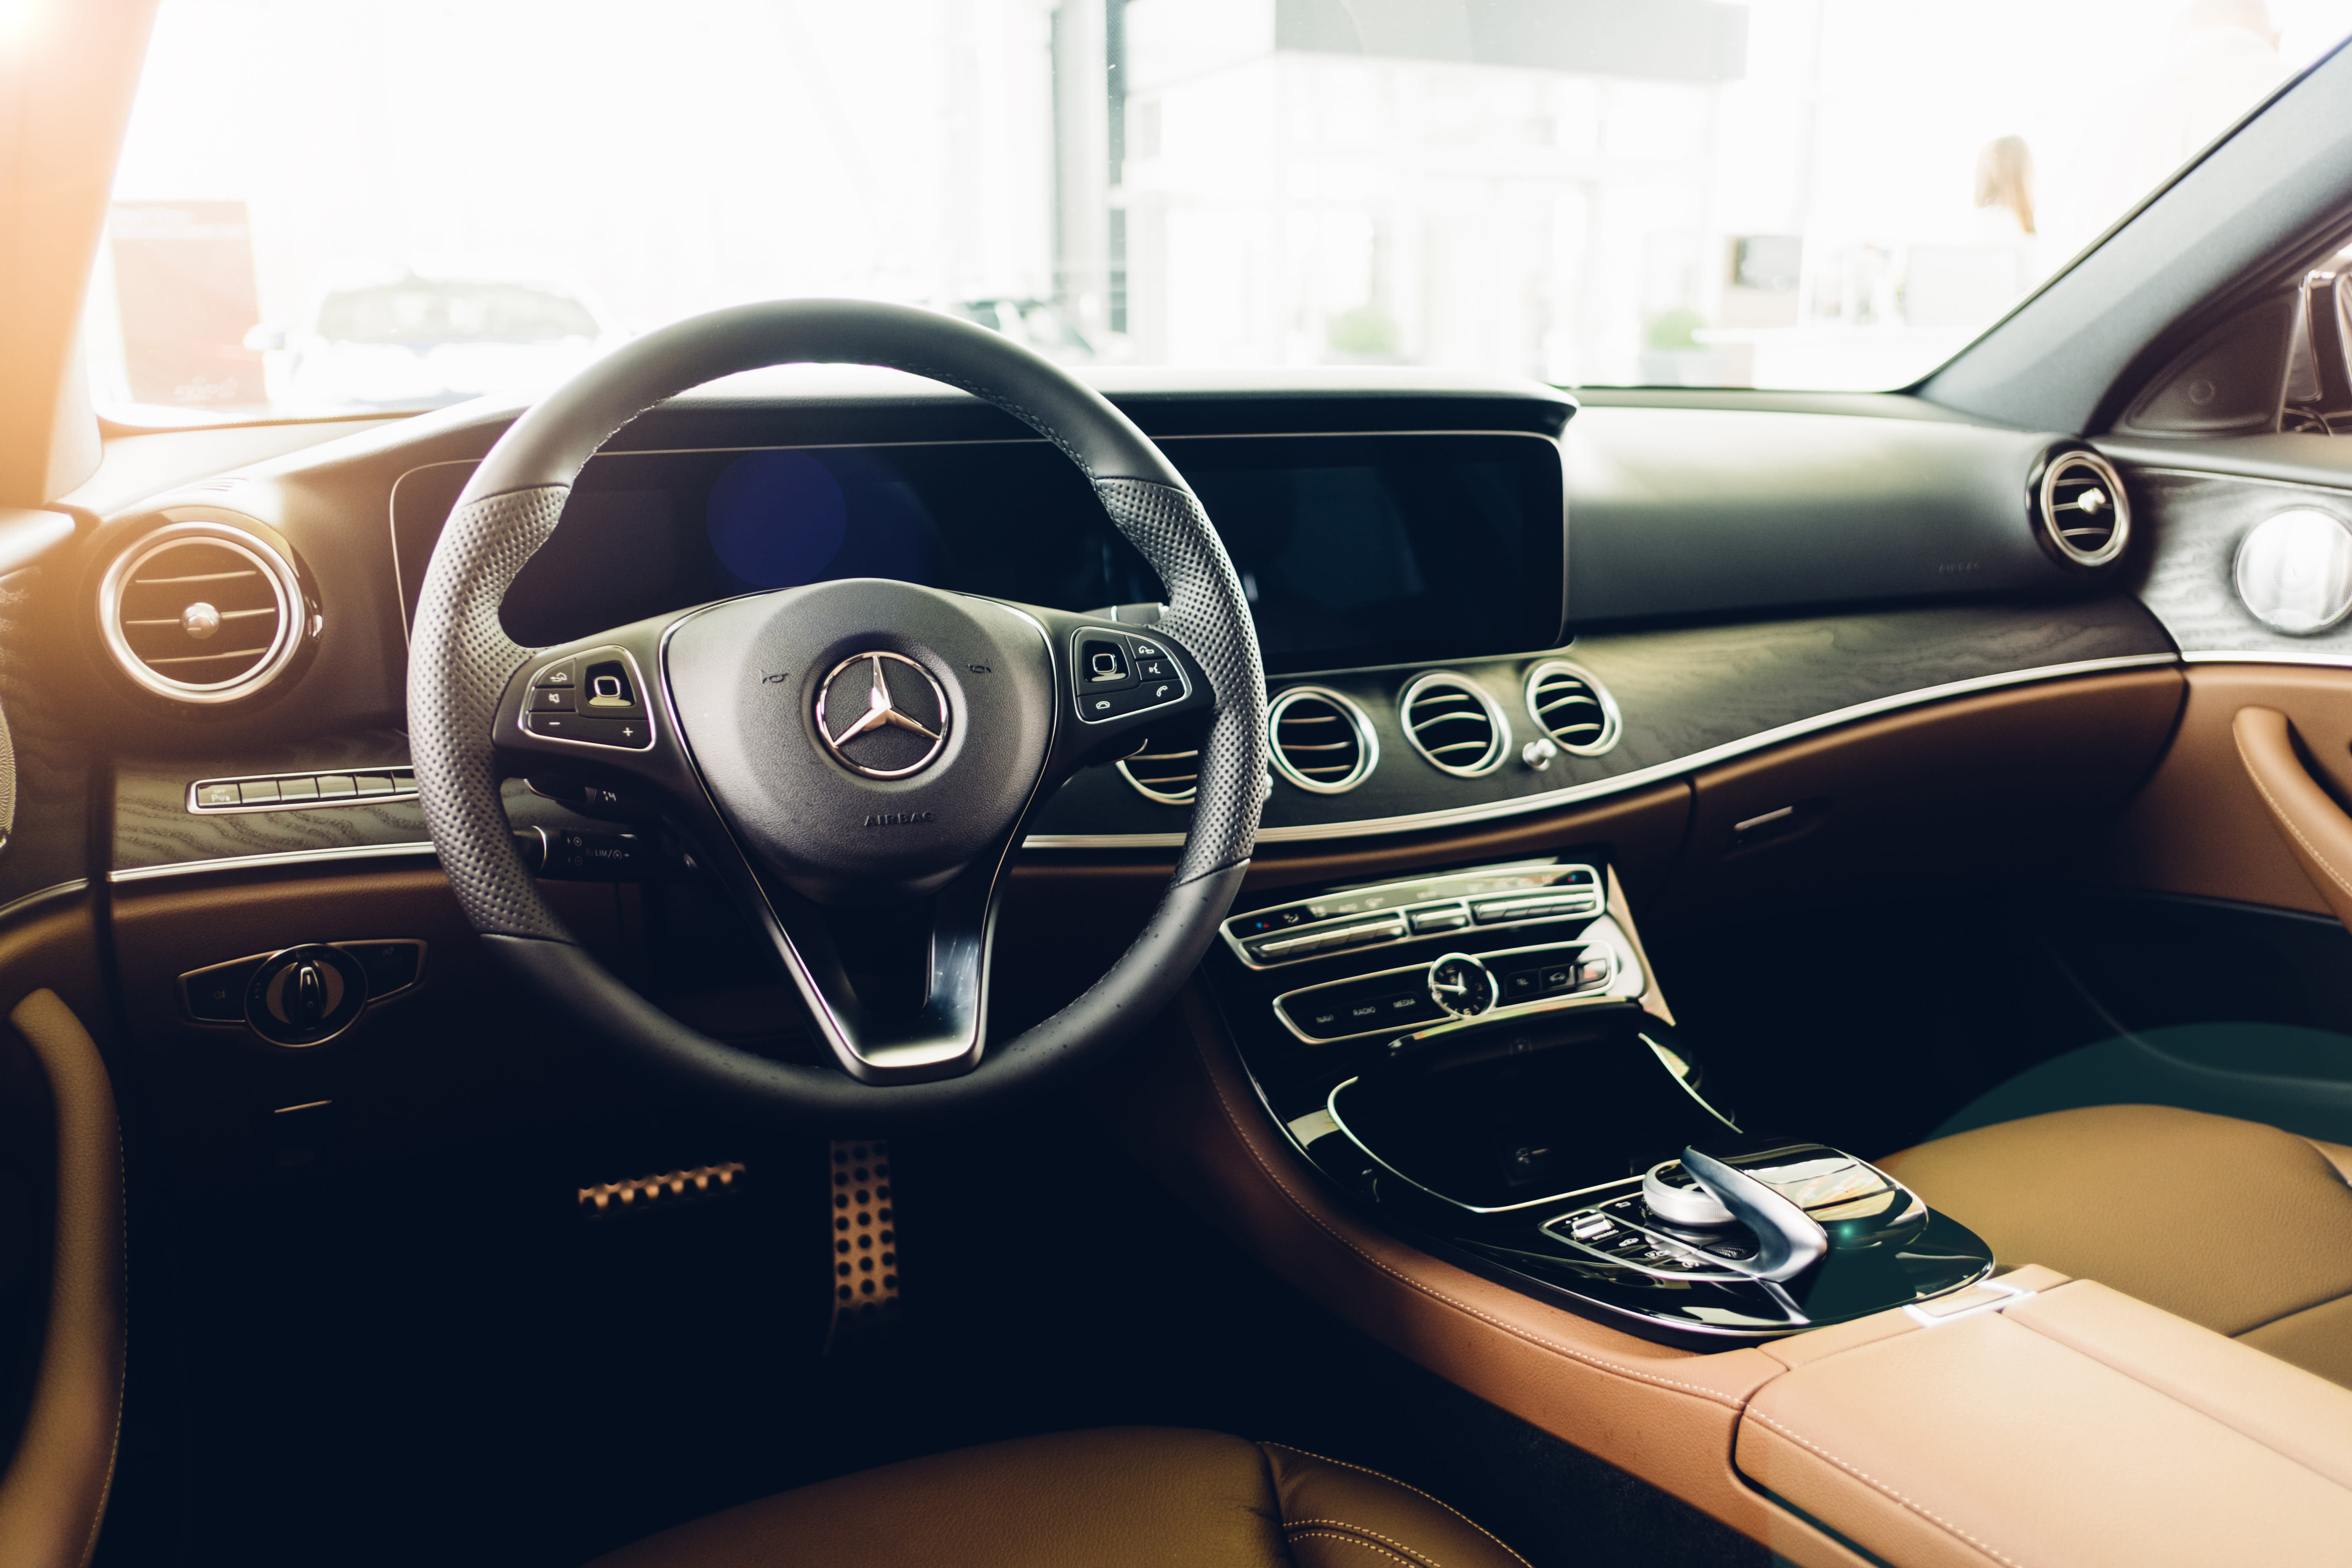 Daimler Recalls More Than 200,000 Mercedes-Benz Vehicles for Airbag Issue